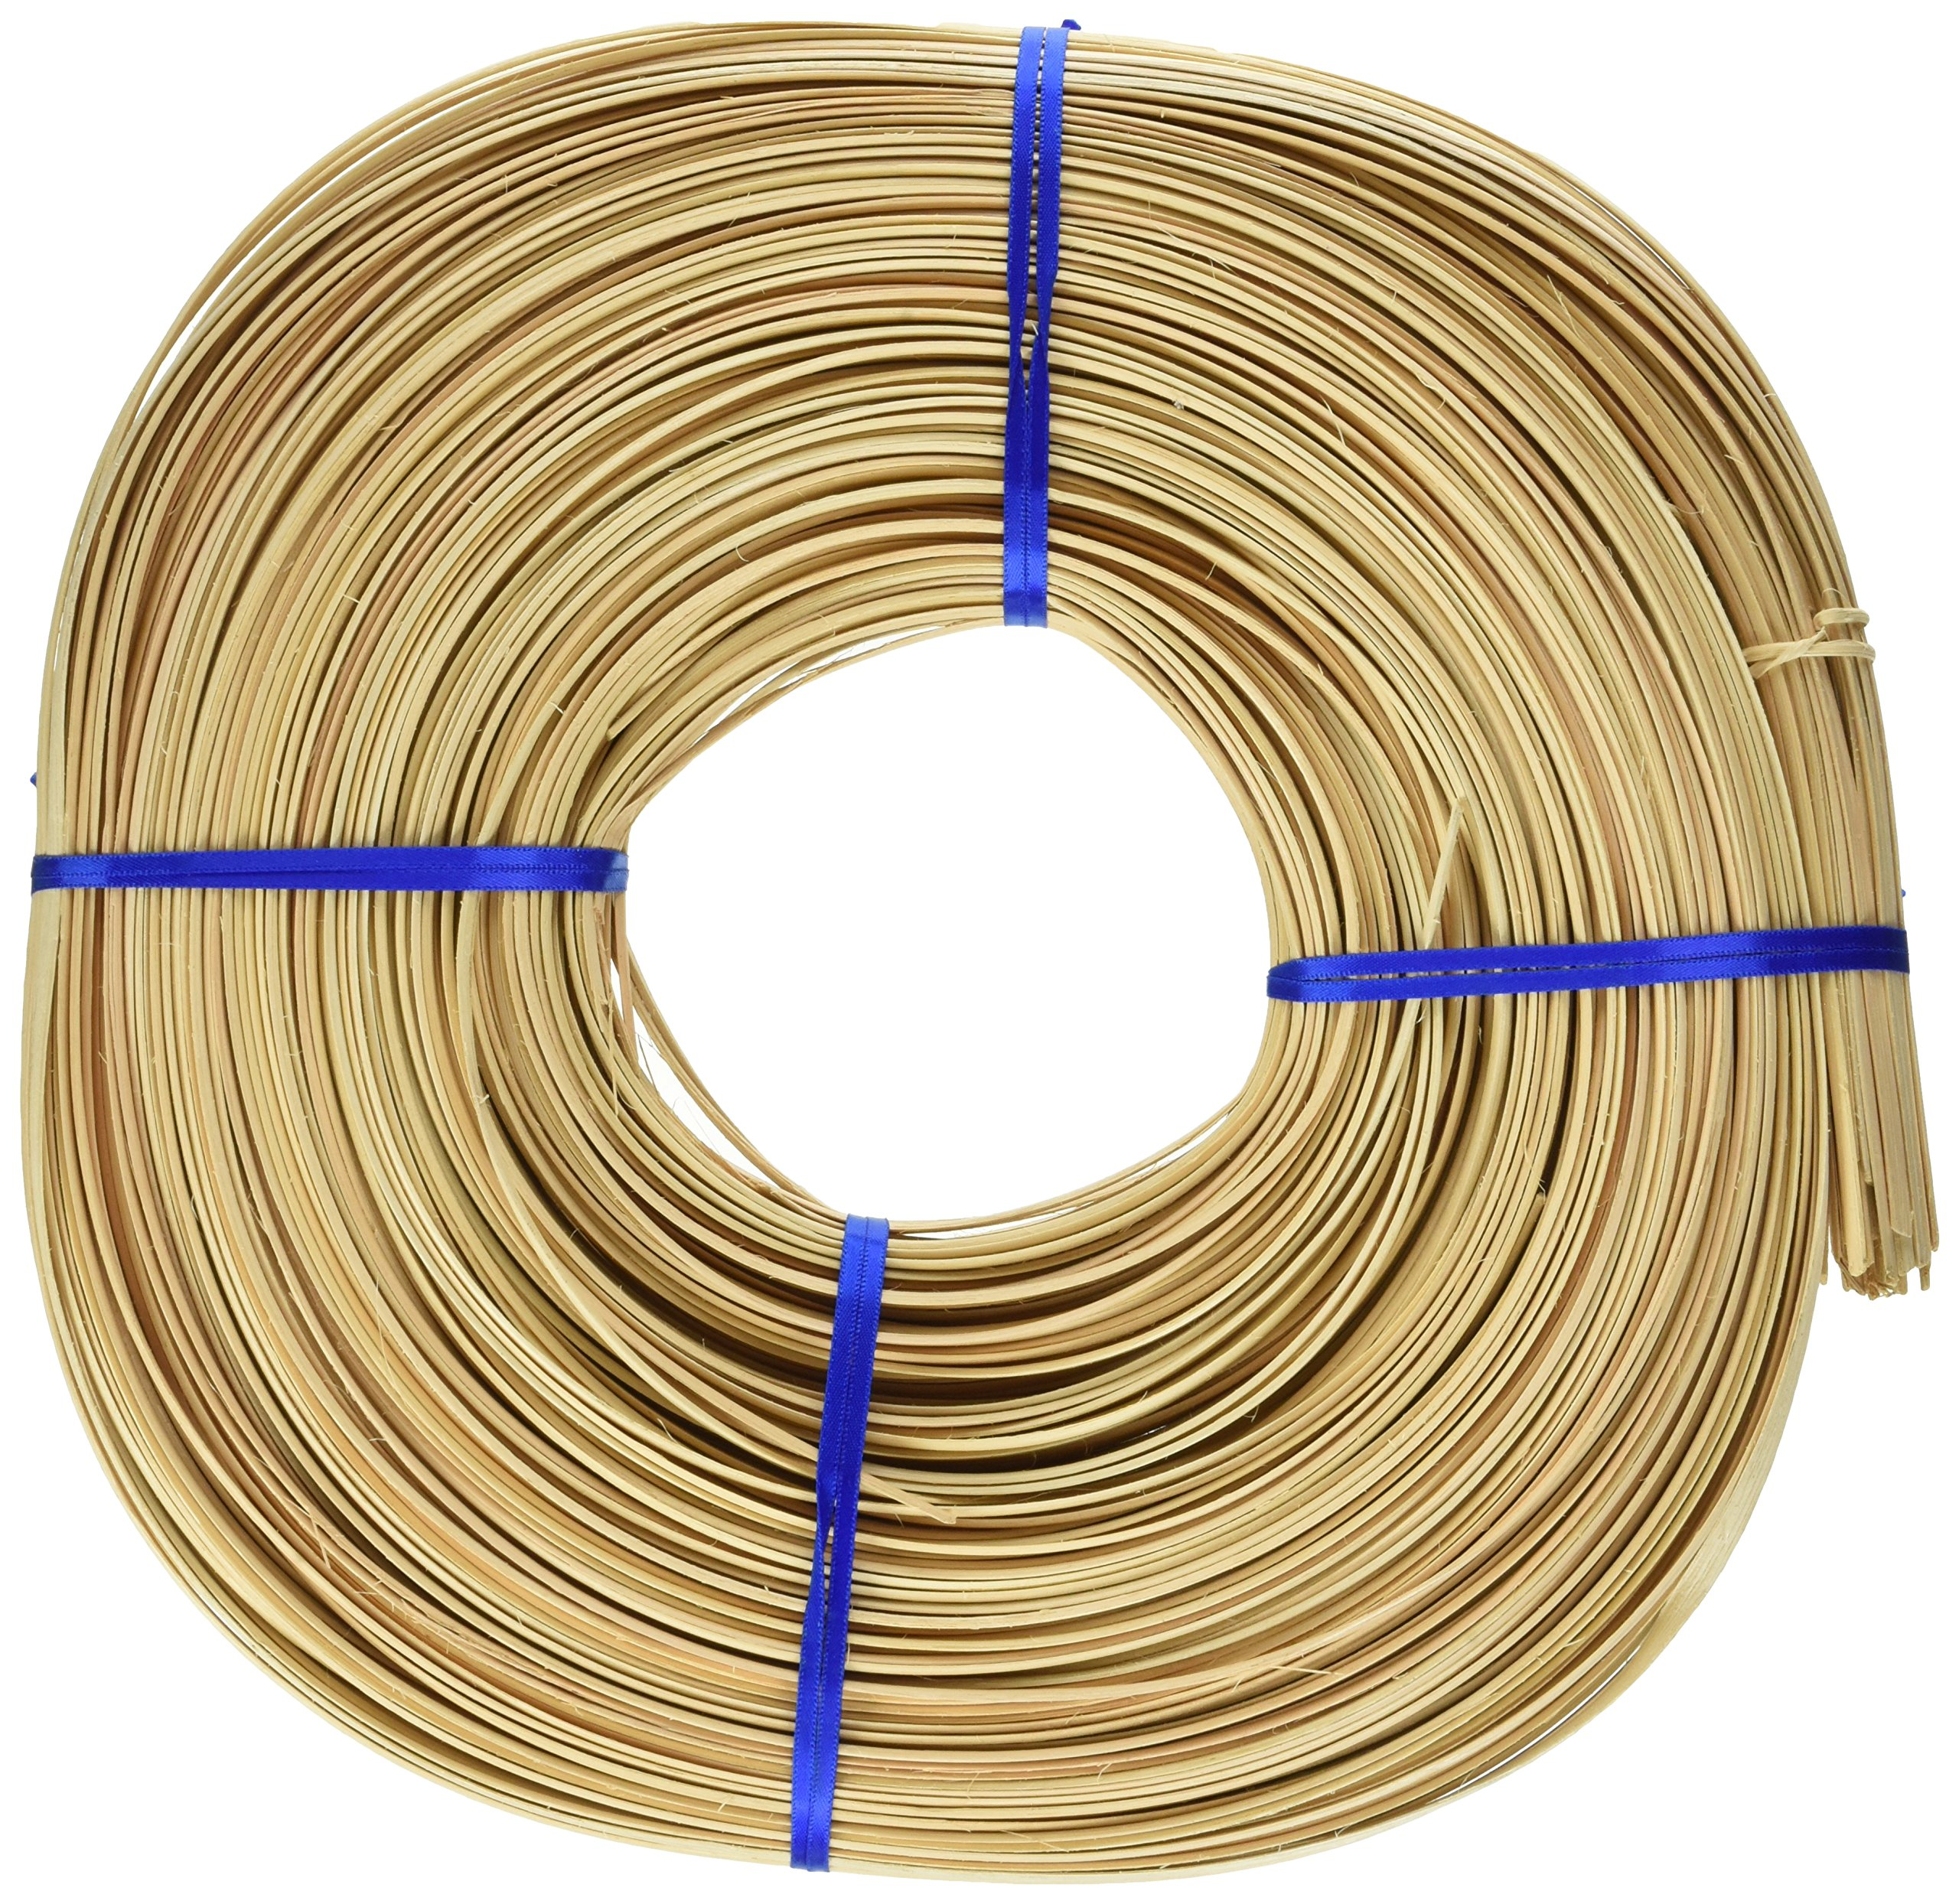 Commonwealth Basket Flat Oval Reed 3/16-Inch 1-Pound Coil, Approximately 275-Feet by Commonwealth Basket